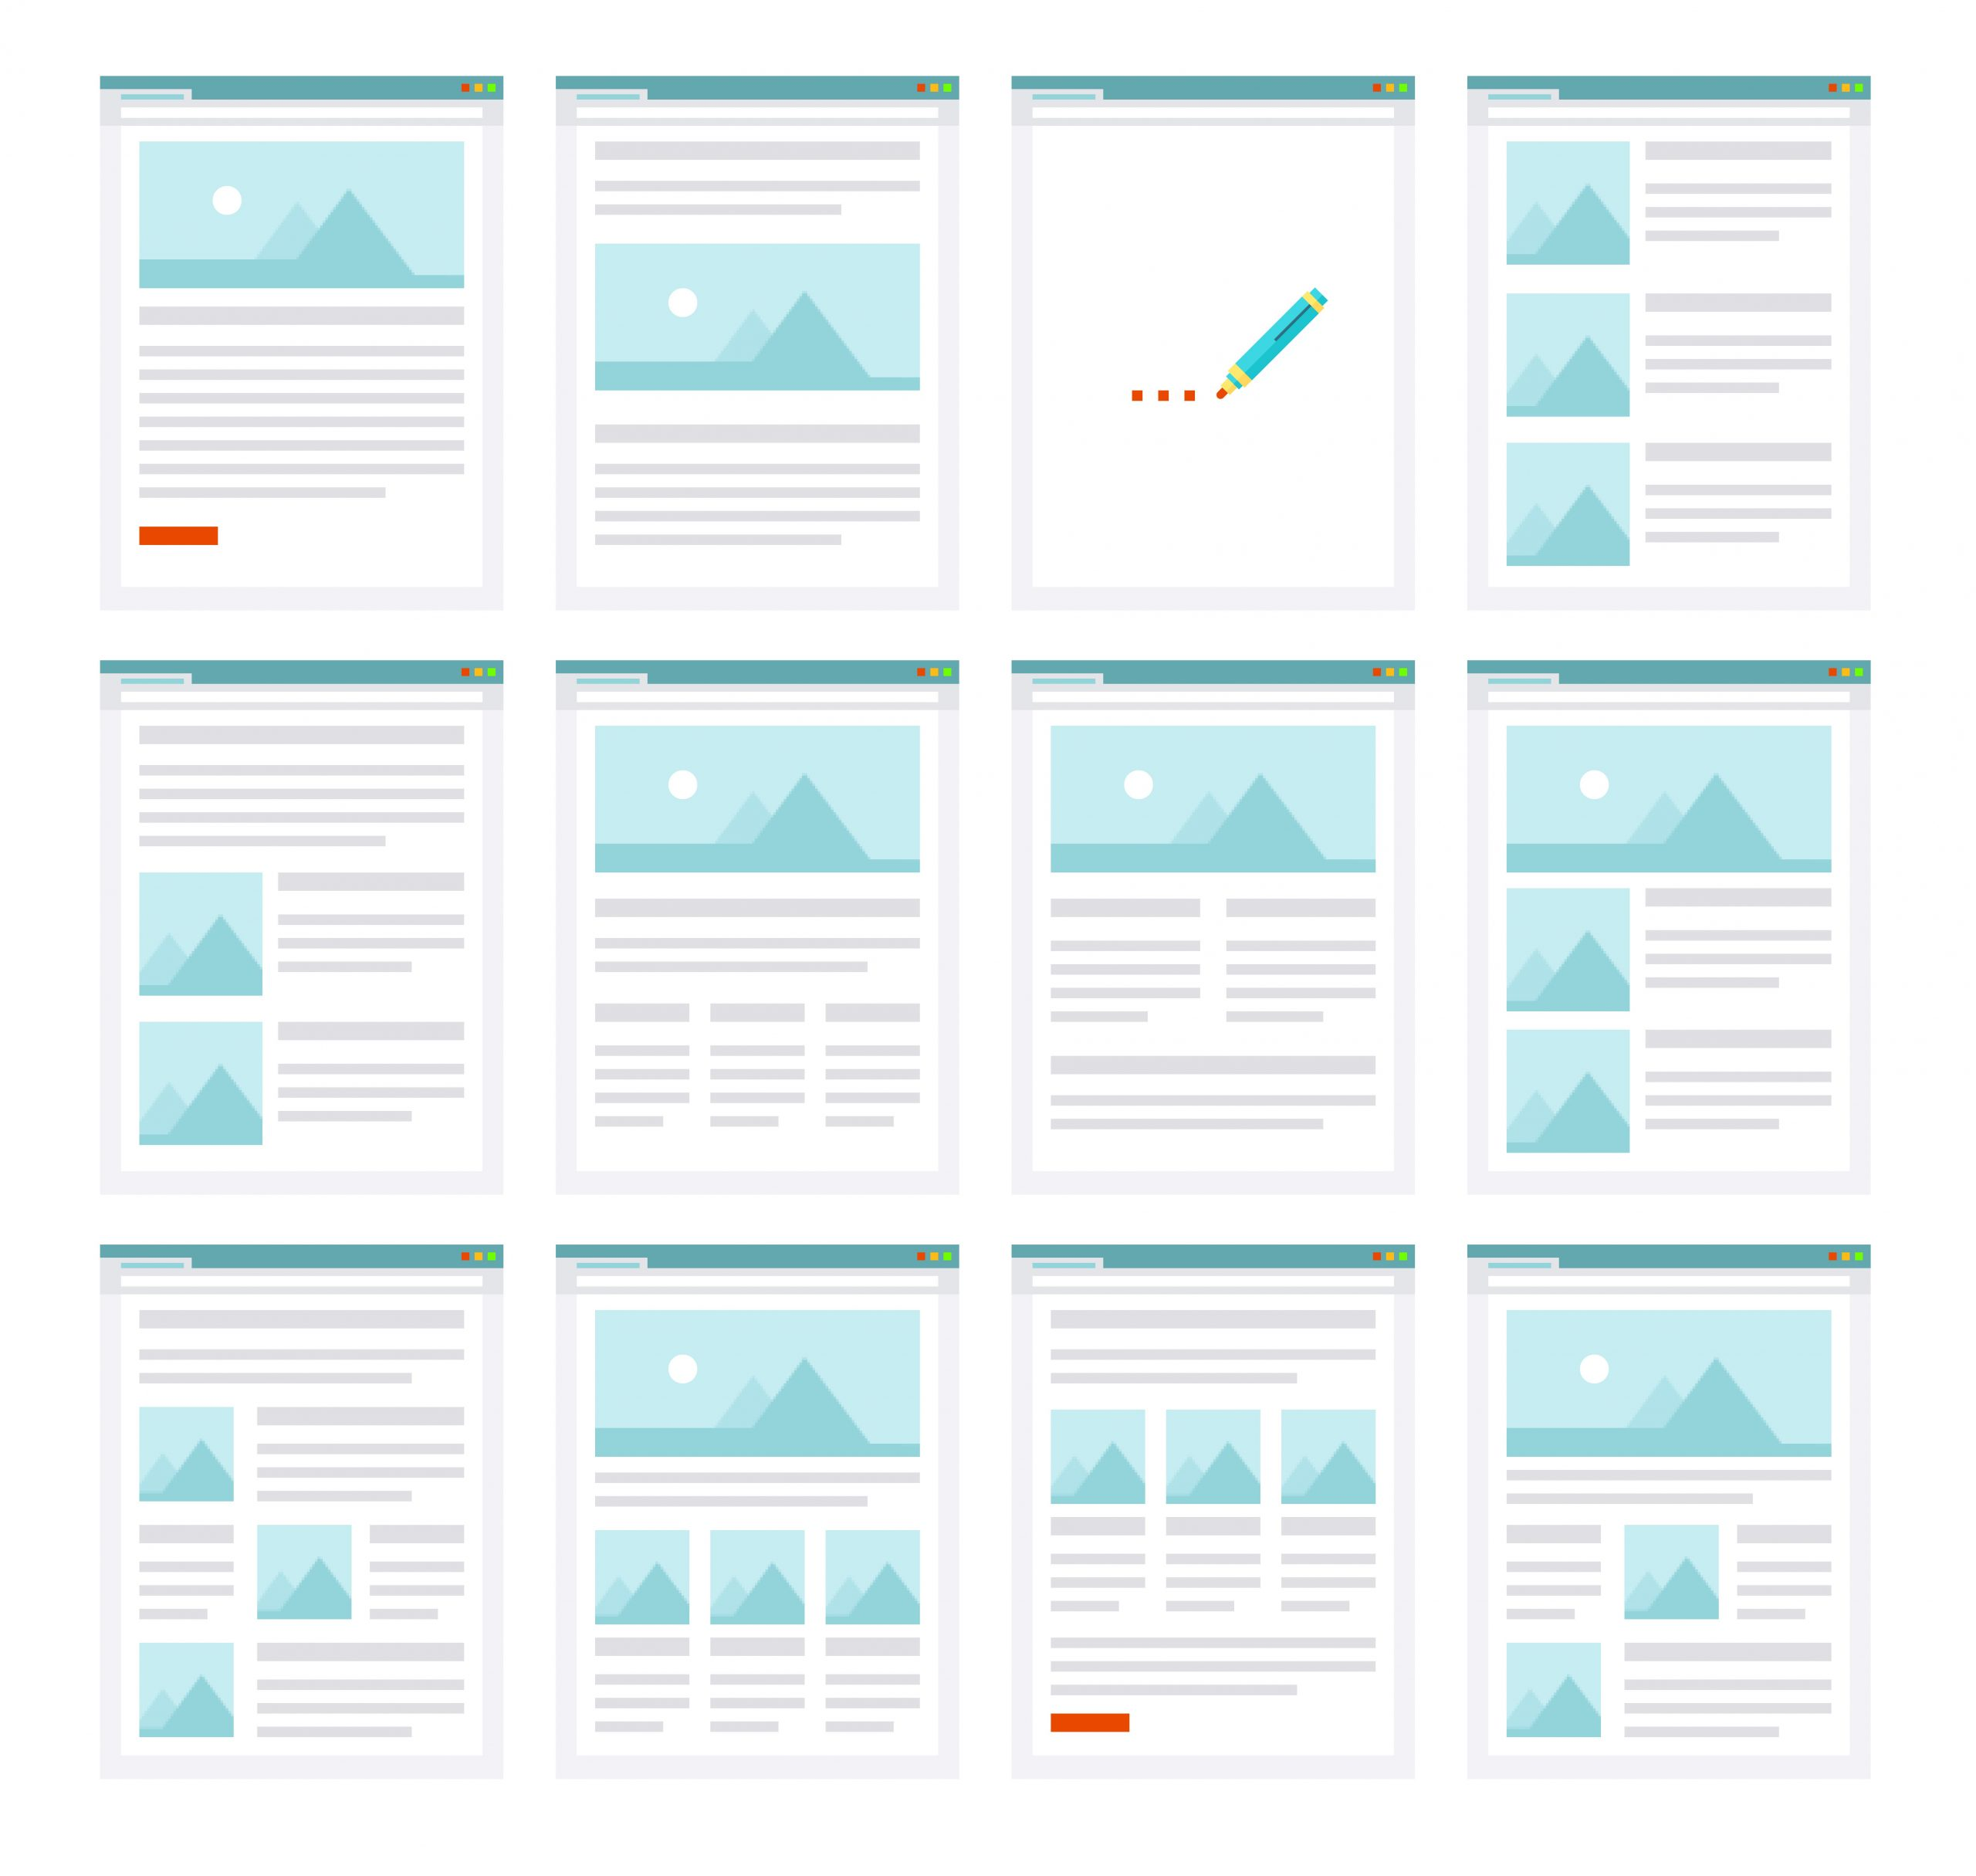 E-mail templates examples wireframe